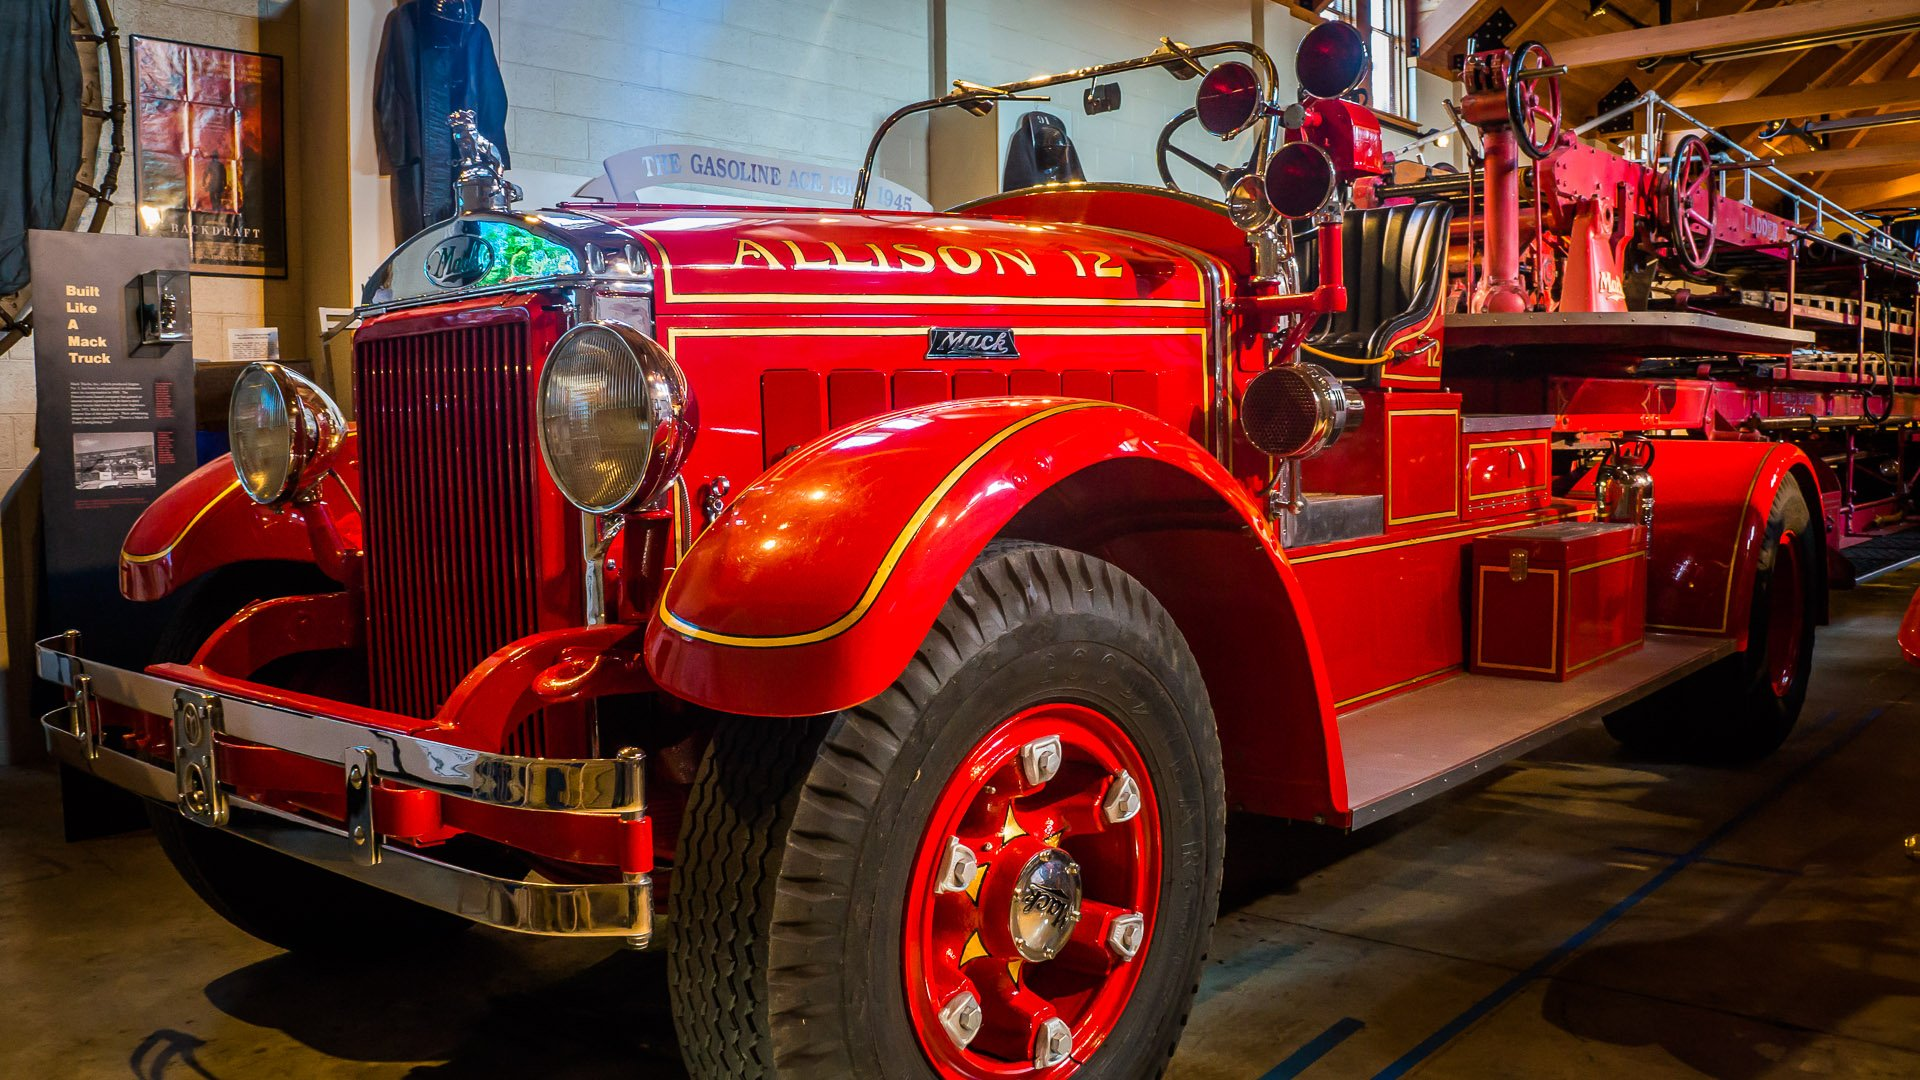 This 1935 ladder truck has been restored to its original condition.